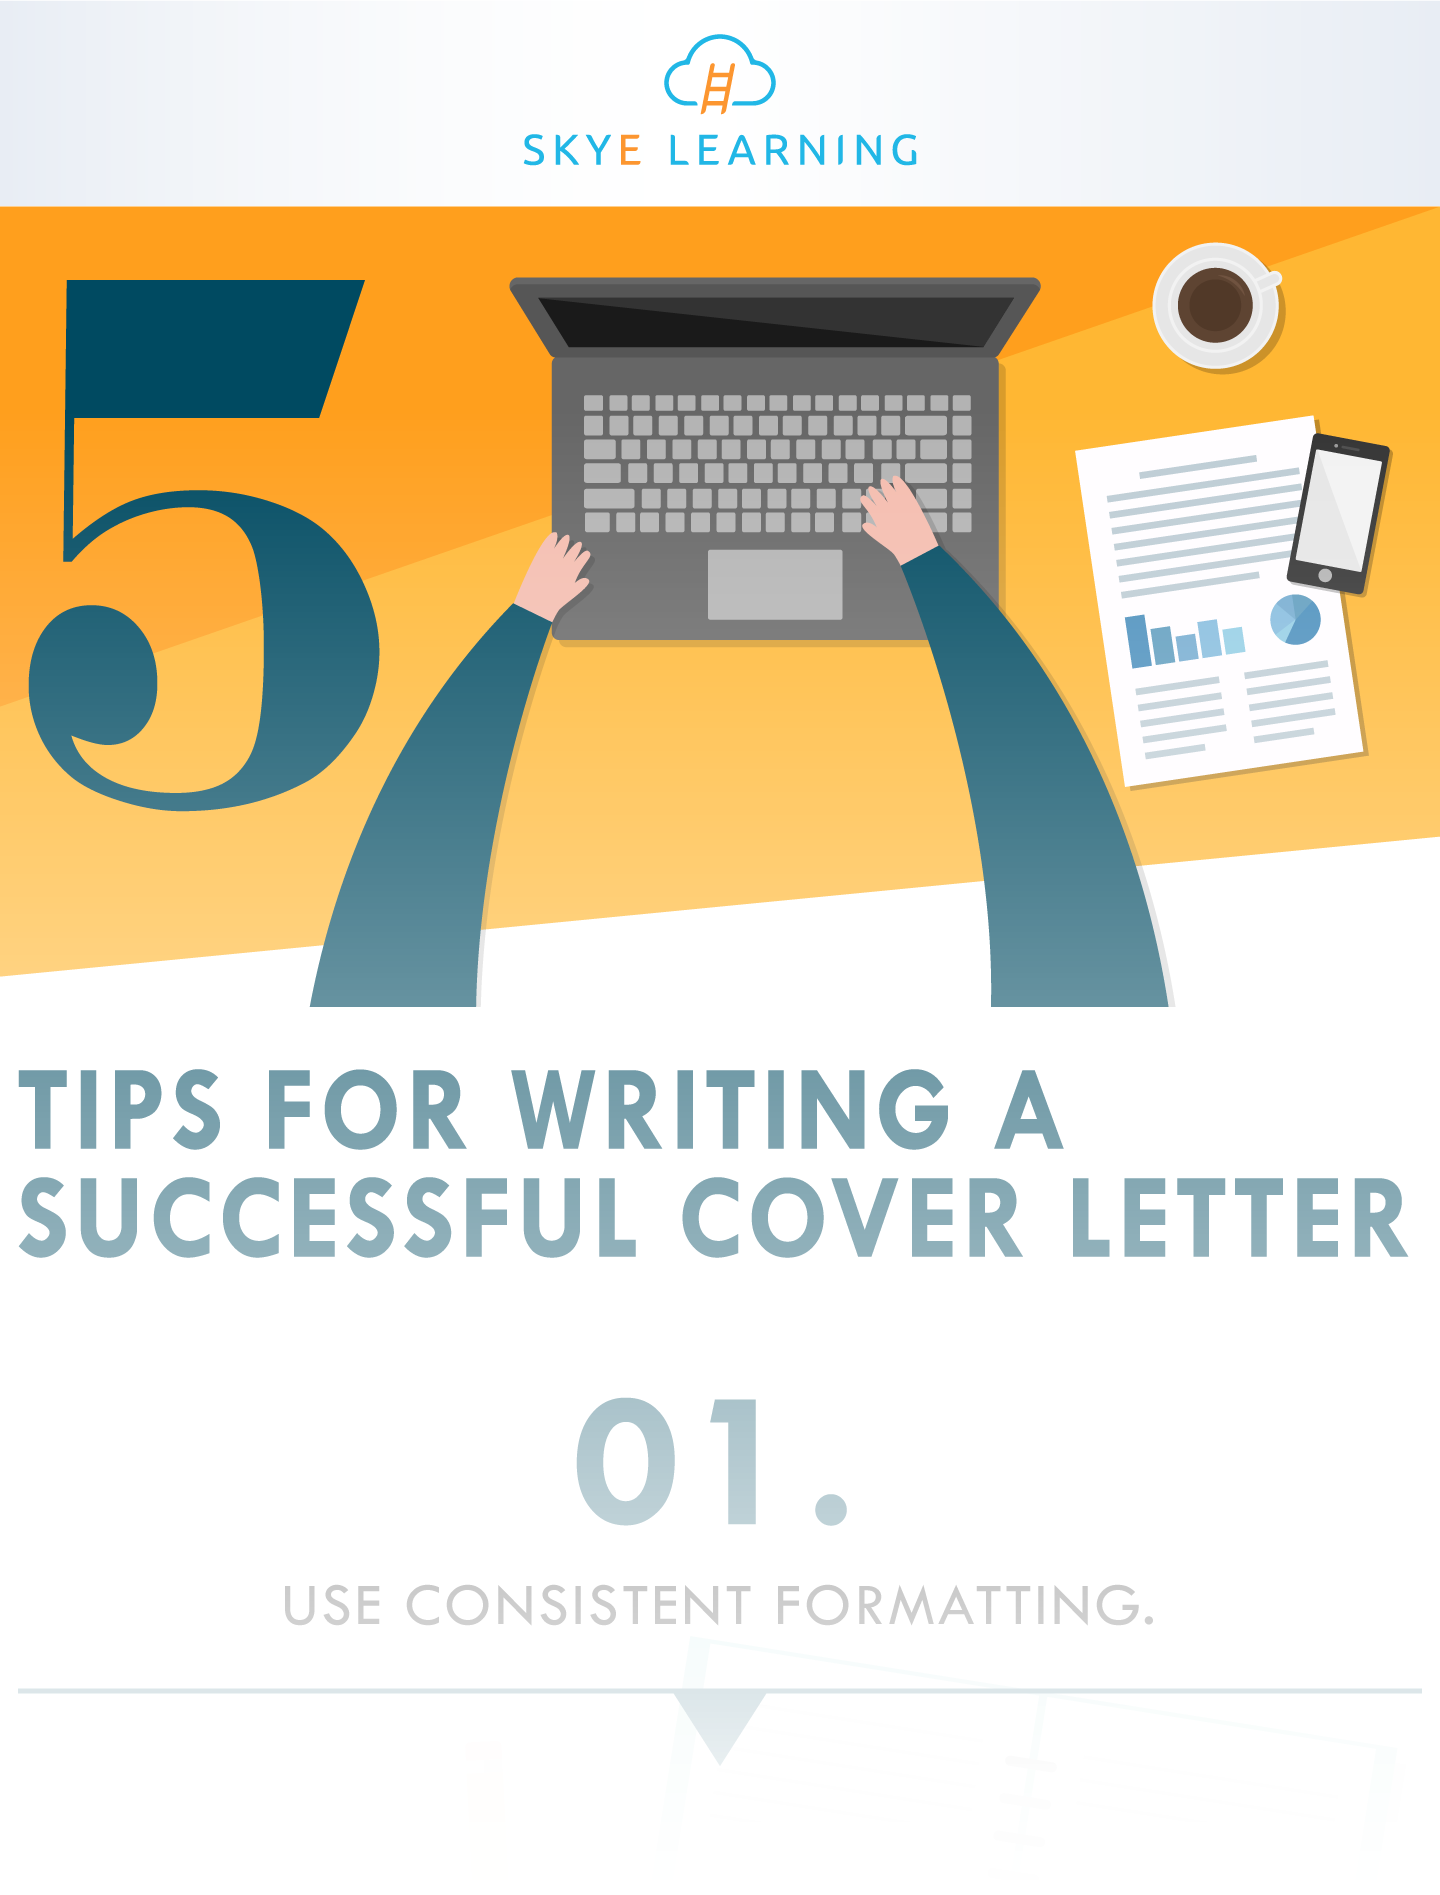 5-Tips-for-Writing-Cover-Letters-SL-IG-2019-TRUNCATED (1)